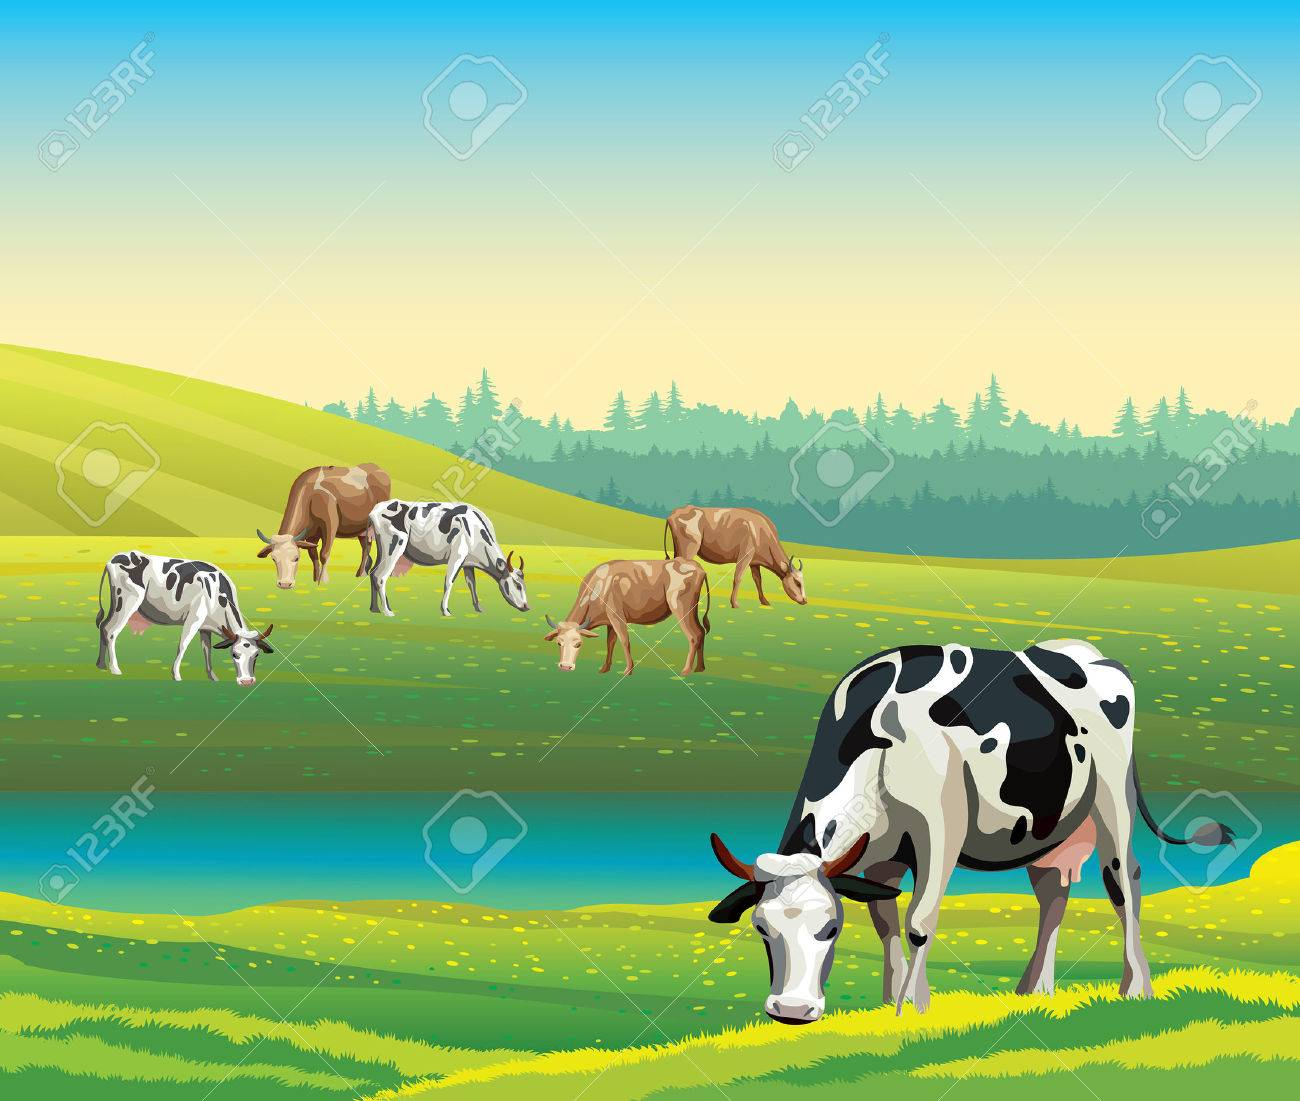 Rural summer landscape with cows and green meadow. Vector nature illustration. - 40933356